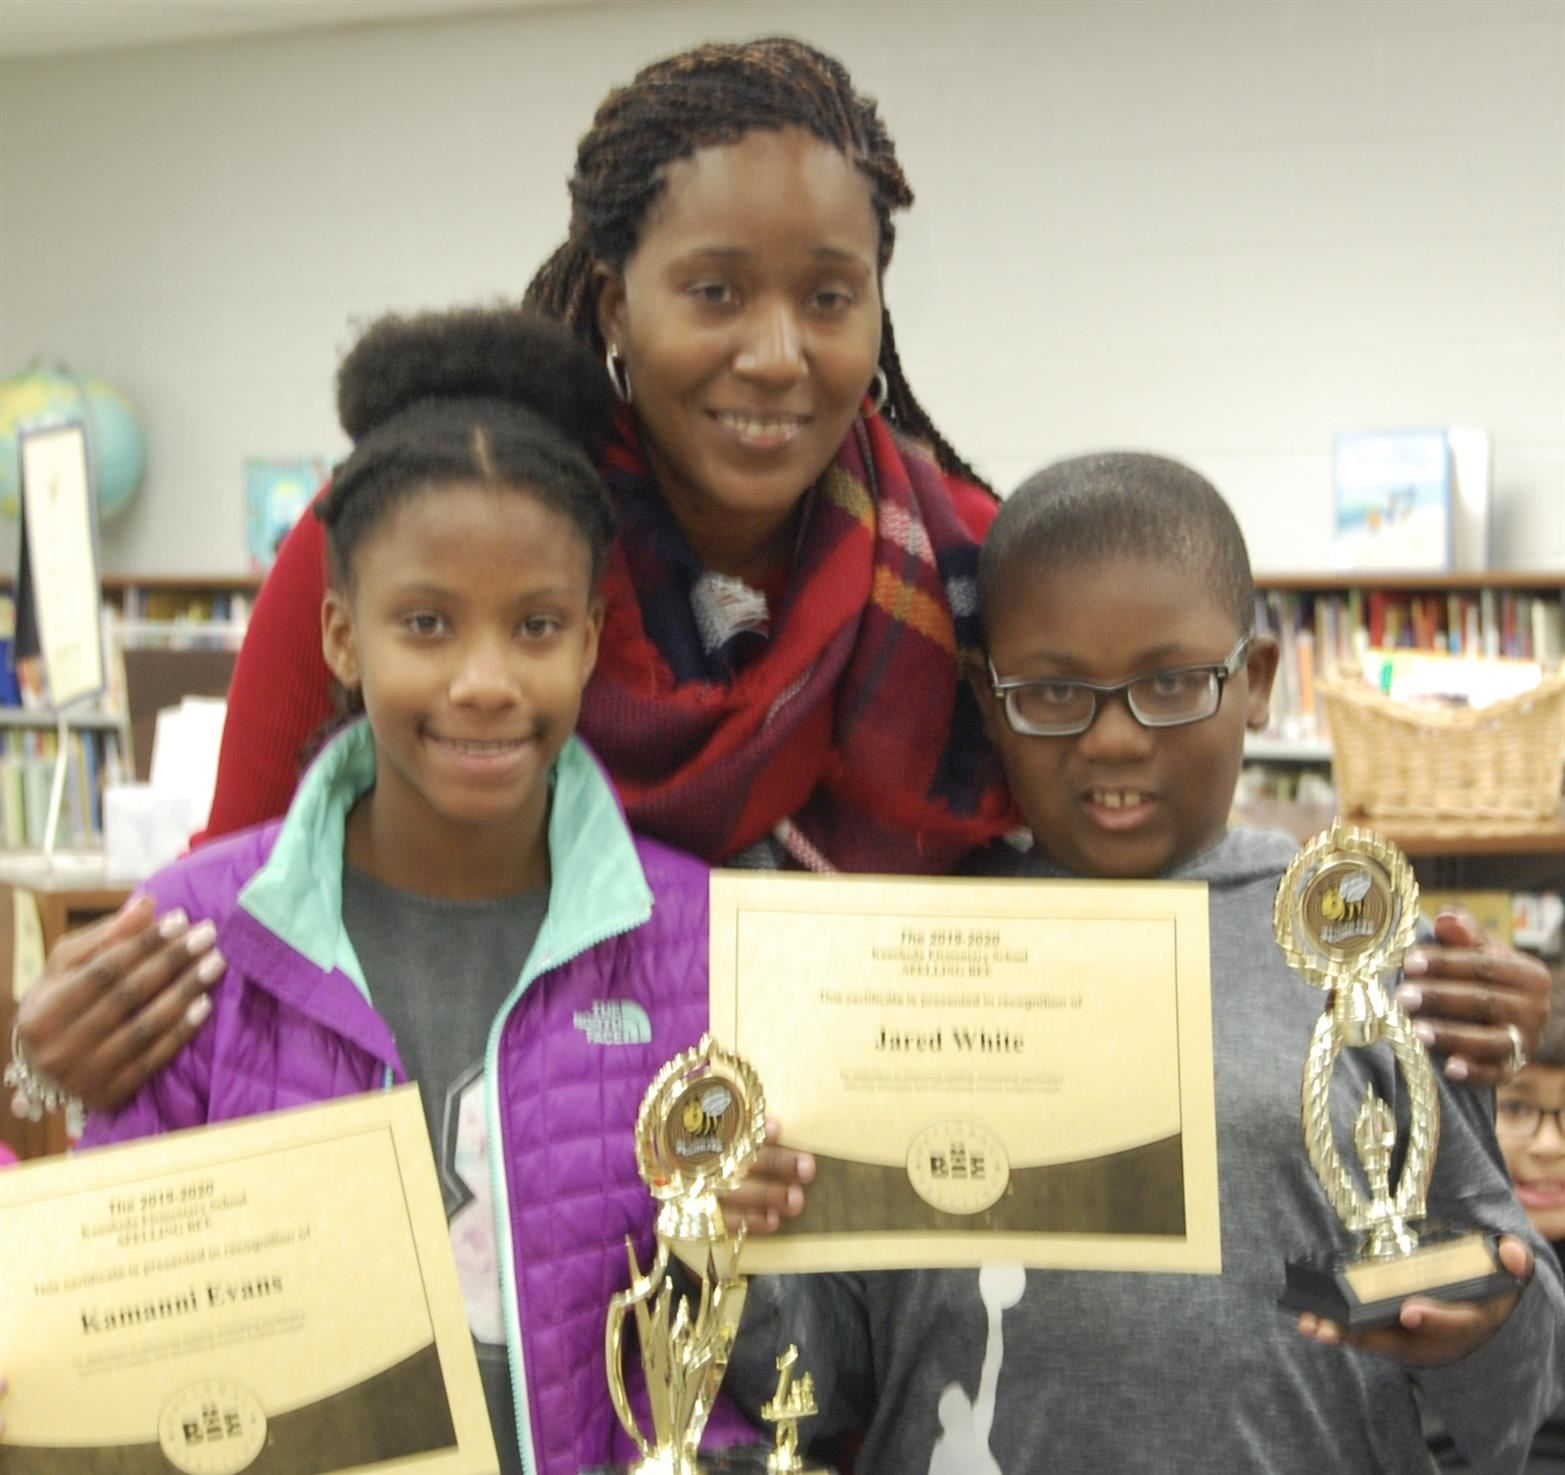 Congratulations to our Spelling Bee Champion and Finalist!